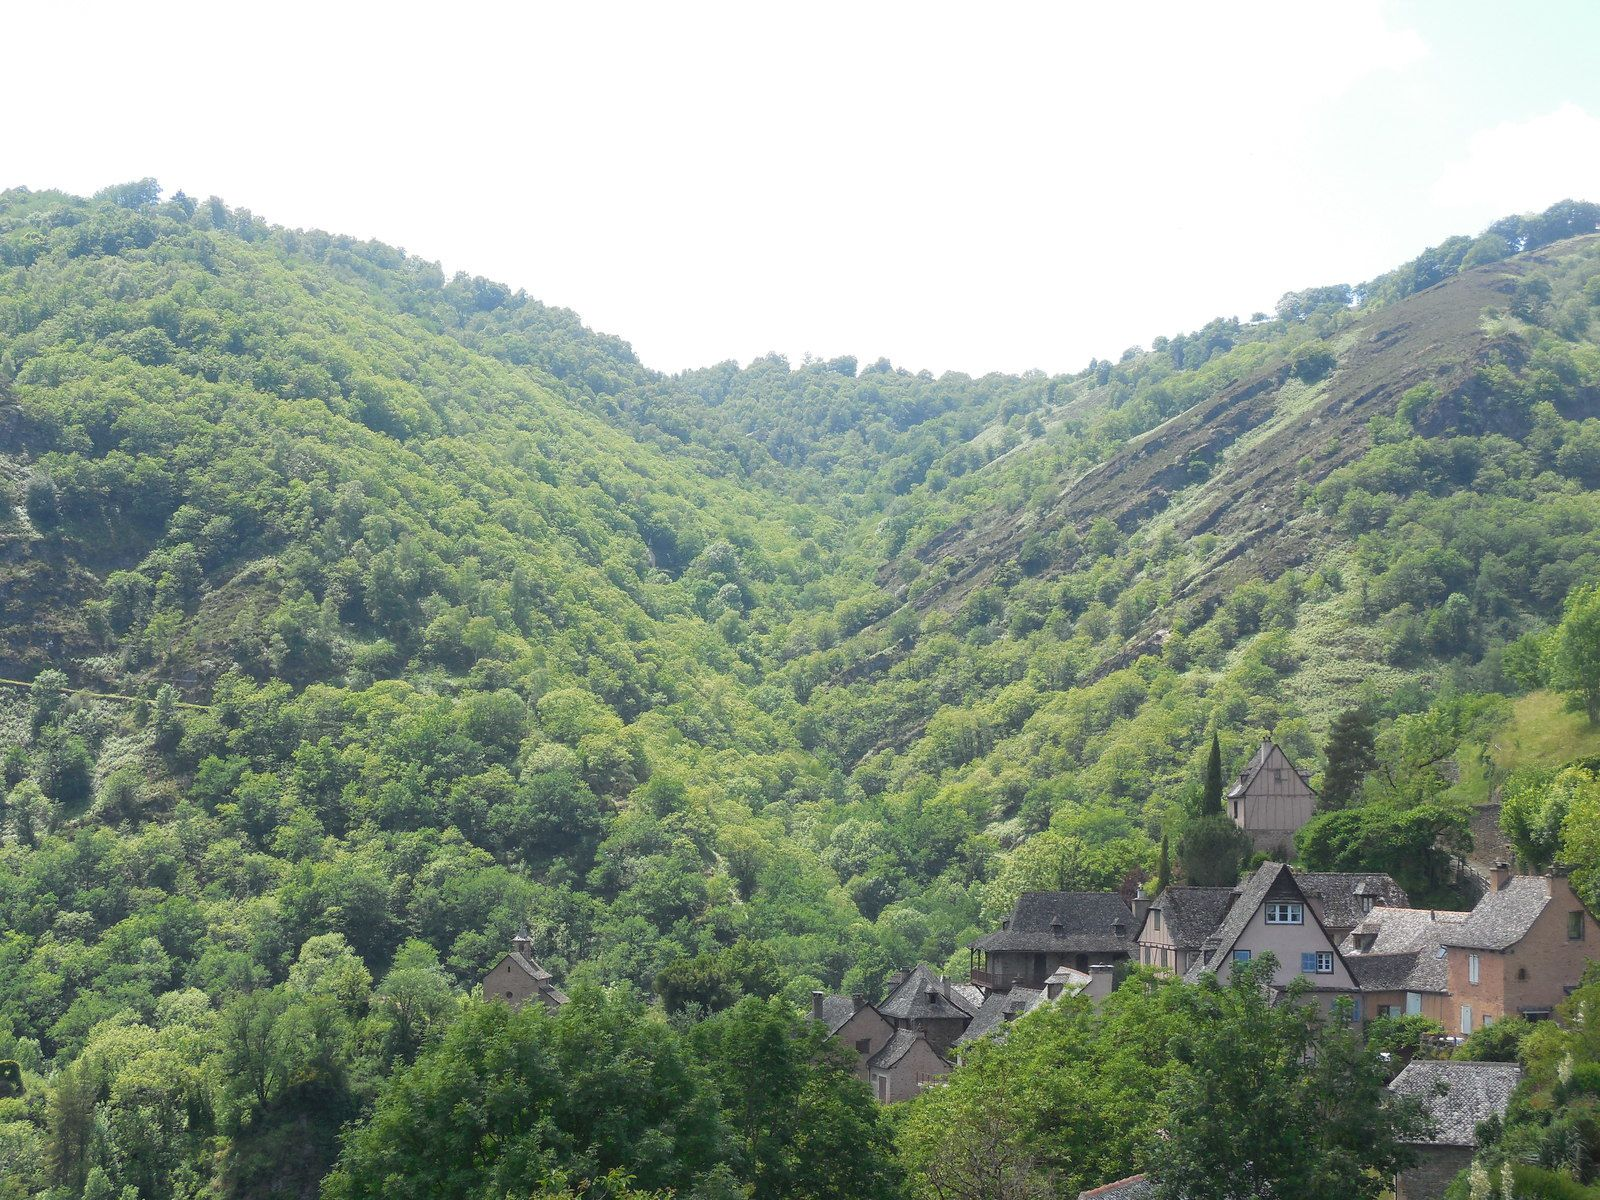 Les plus beaux villages de France: Conques (Aveyron)